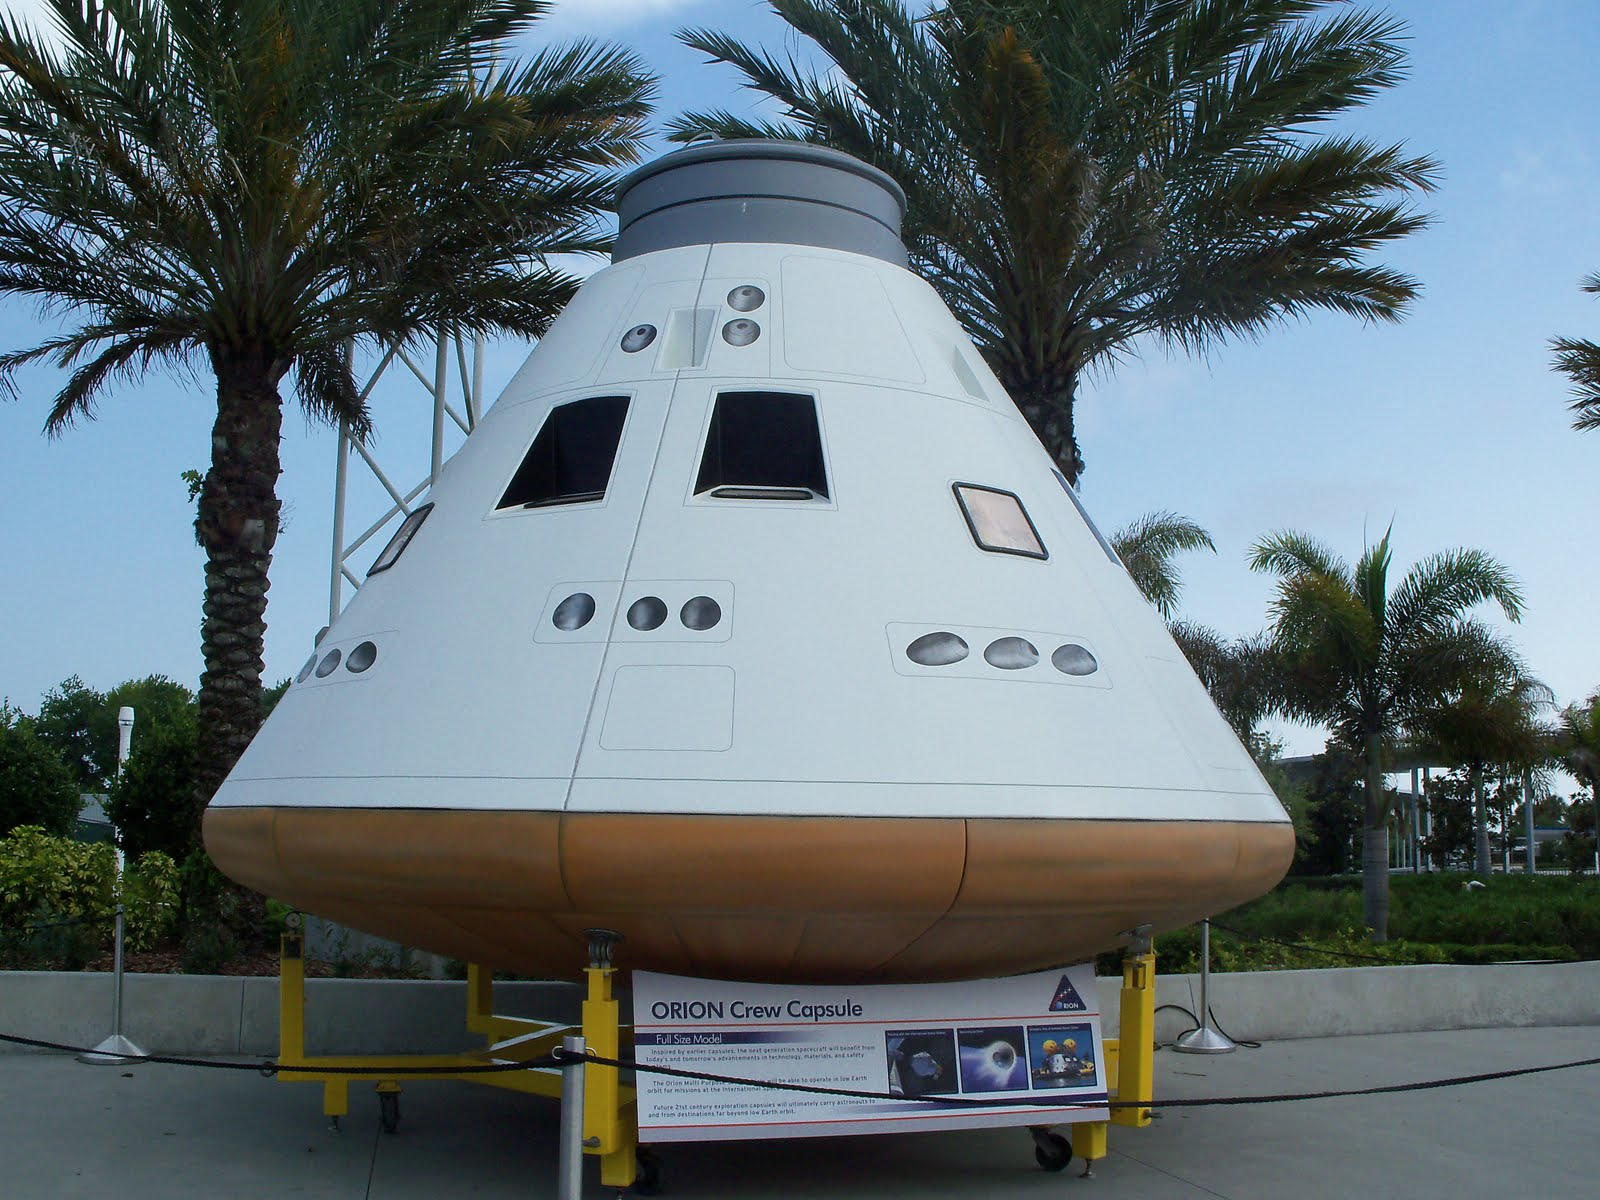 space shuttle replacement - photo #12